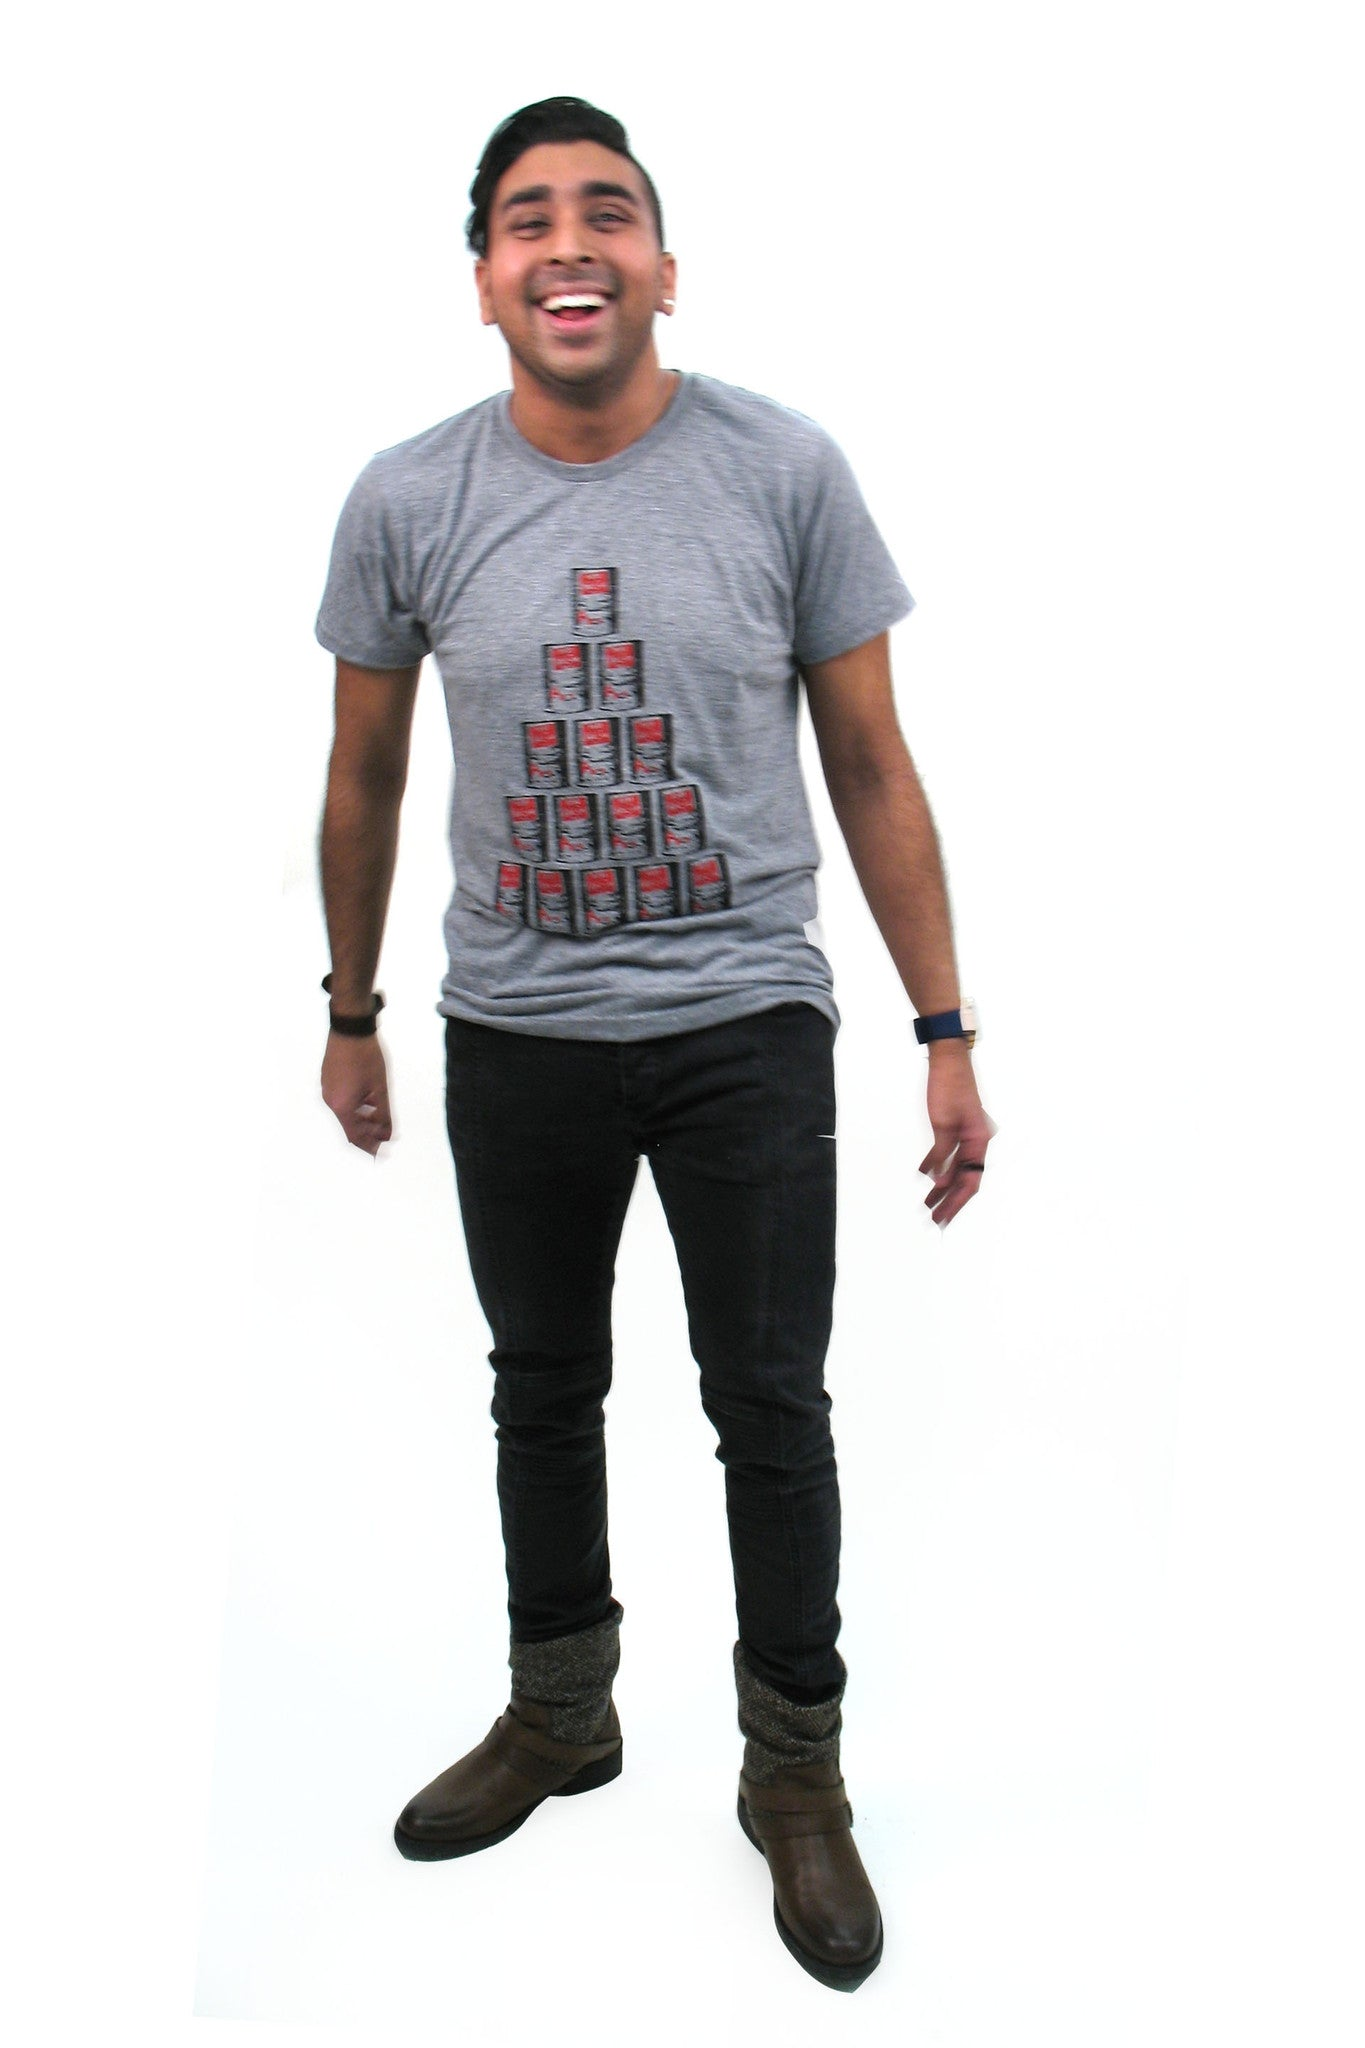 Workshop Boutique's Own Men's Maple Syrup Tee in Heather Grey - Hand printed in Ottwa